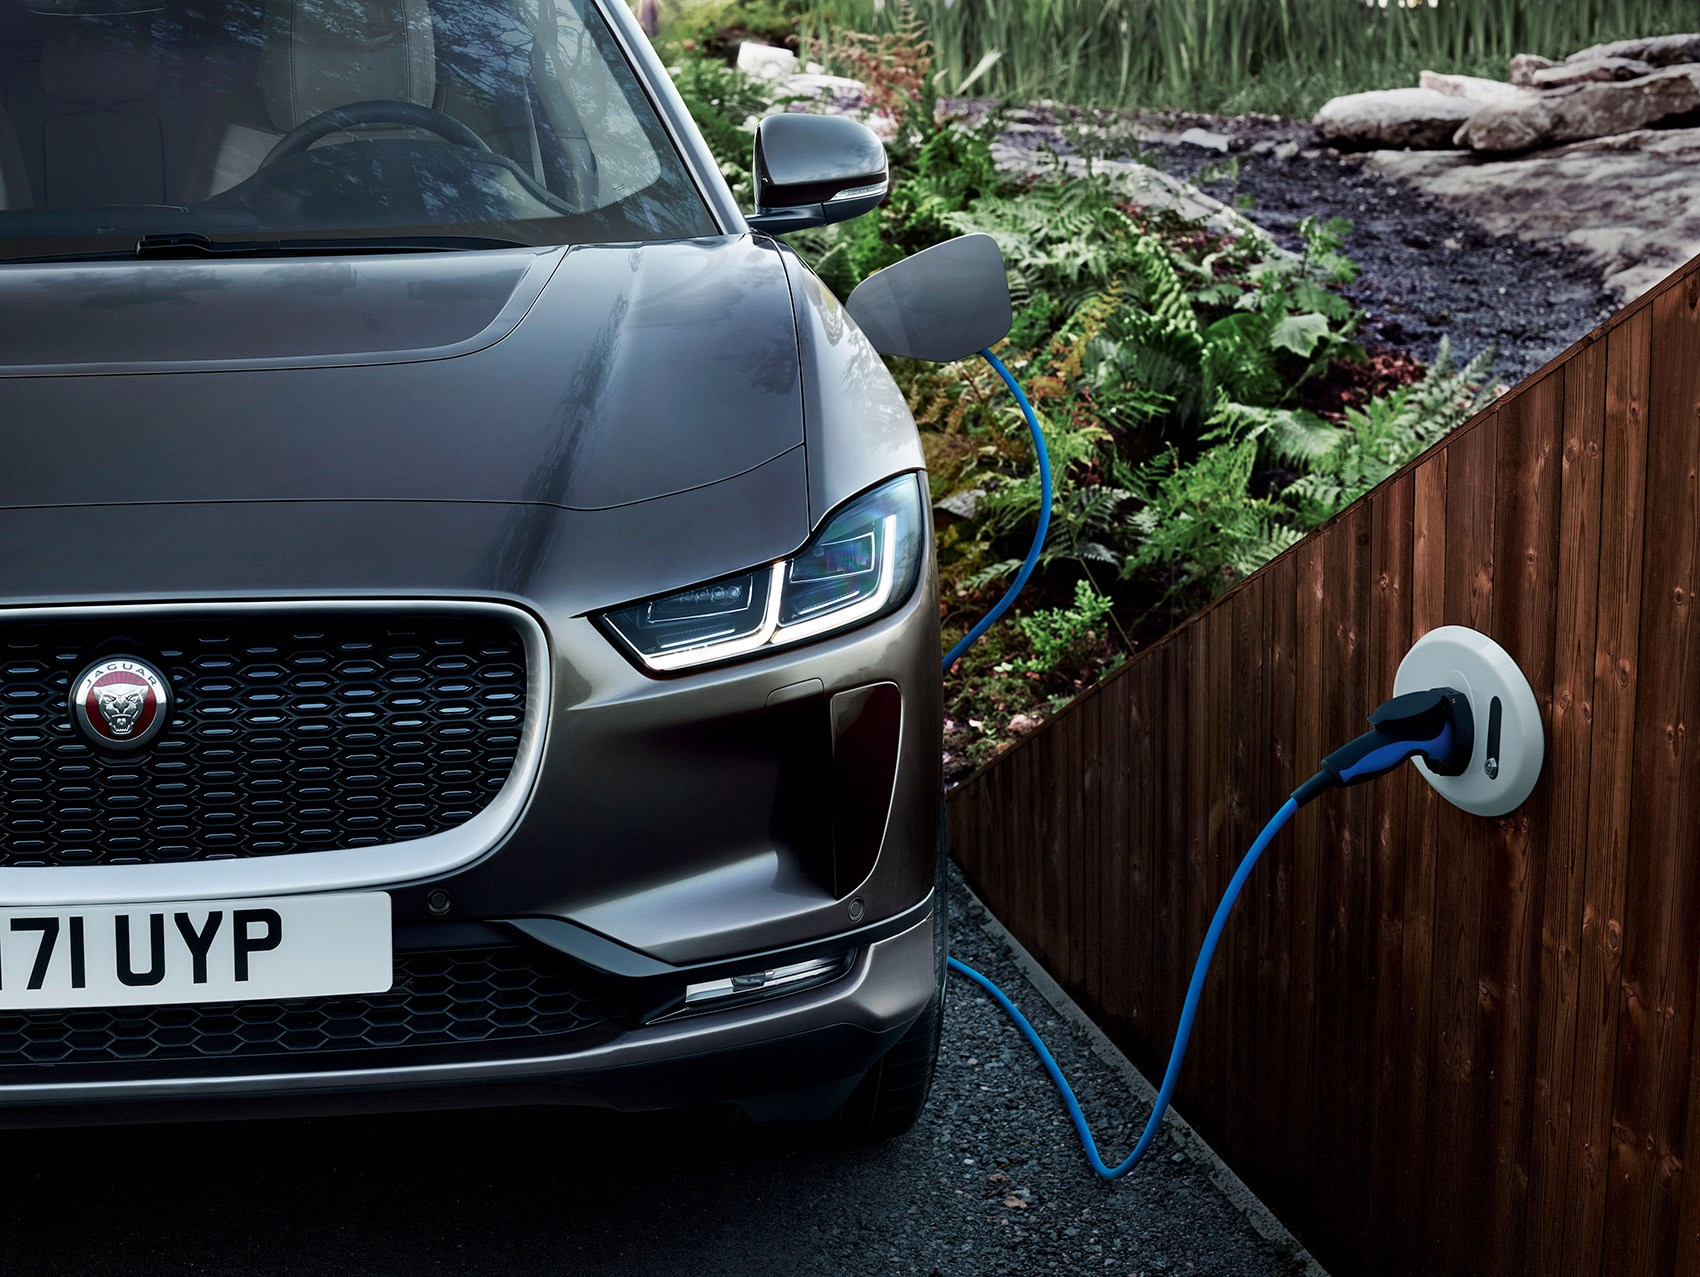 best electric cars 2019 uk: our pick of the best evs you can buy